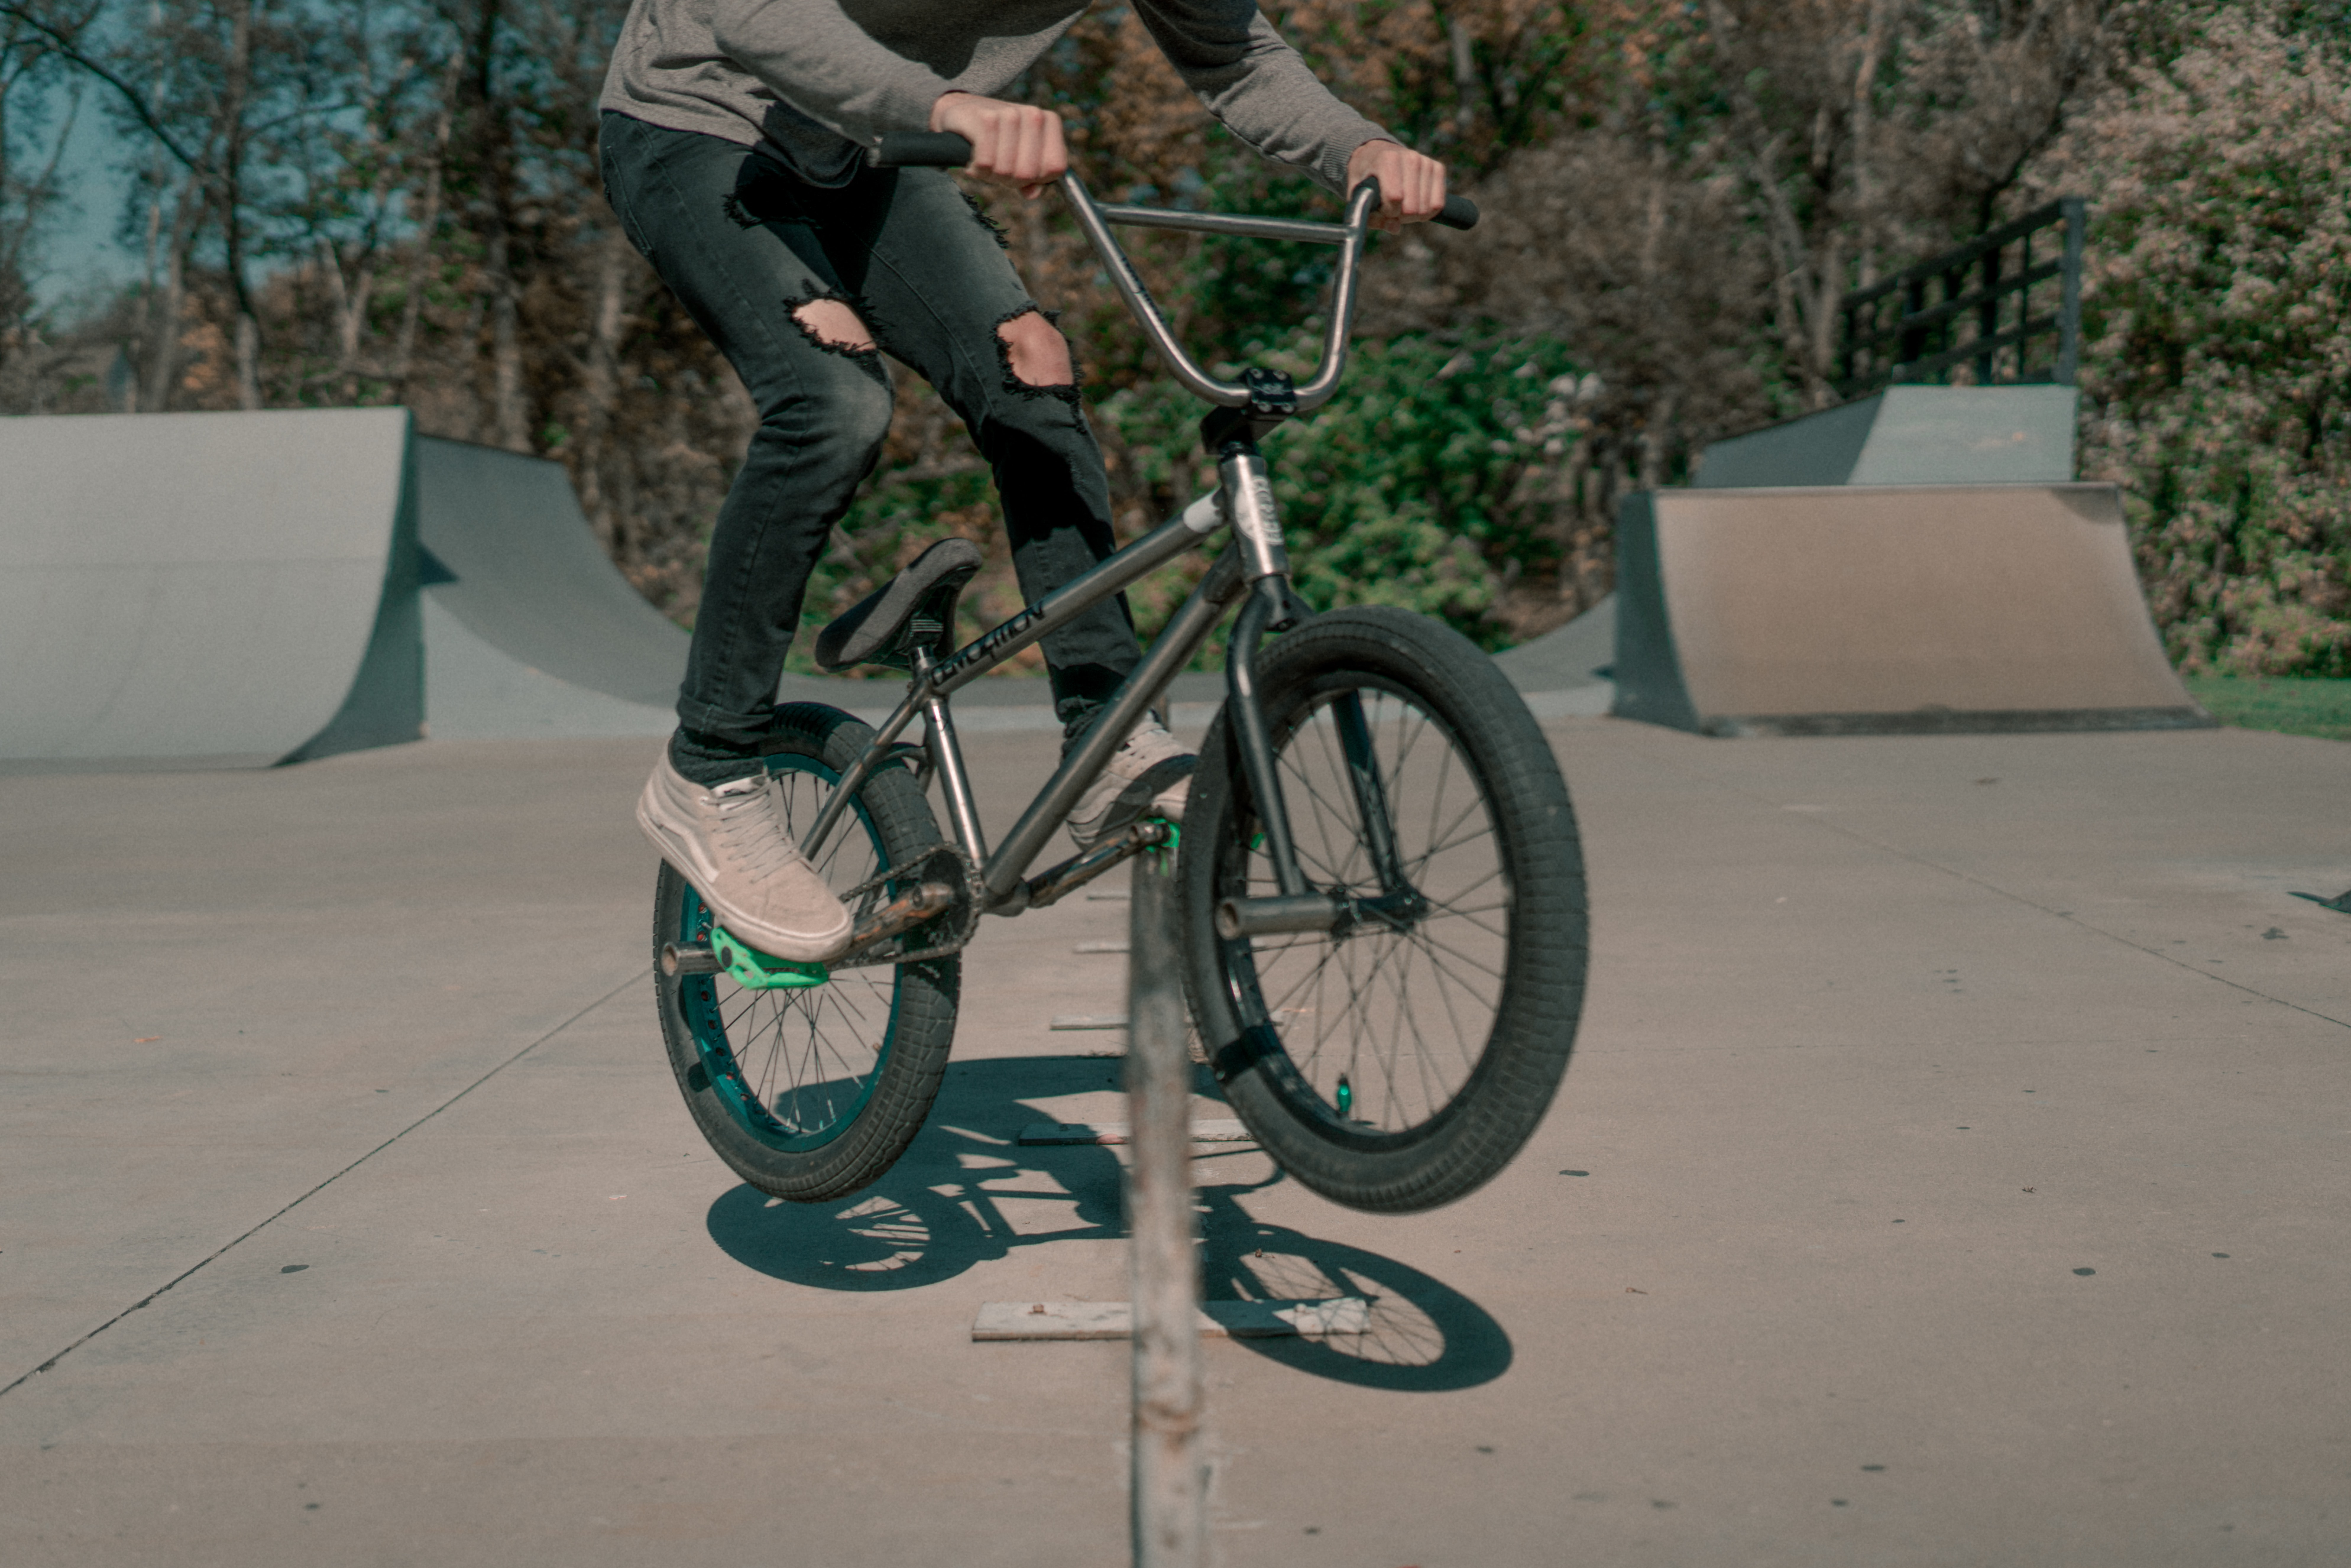 person performing BMX trick